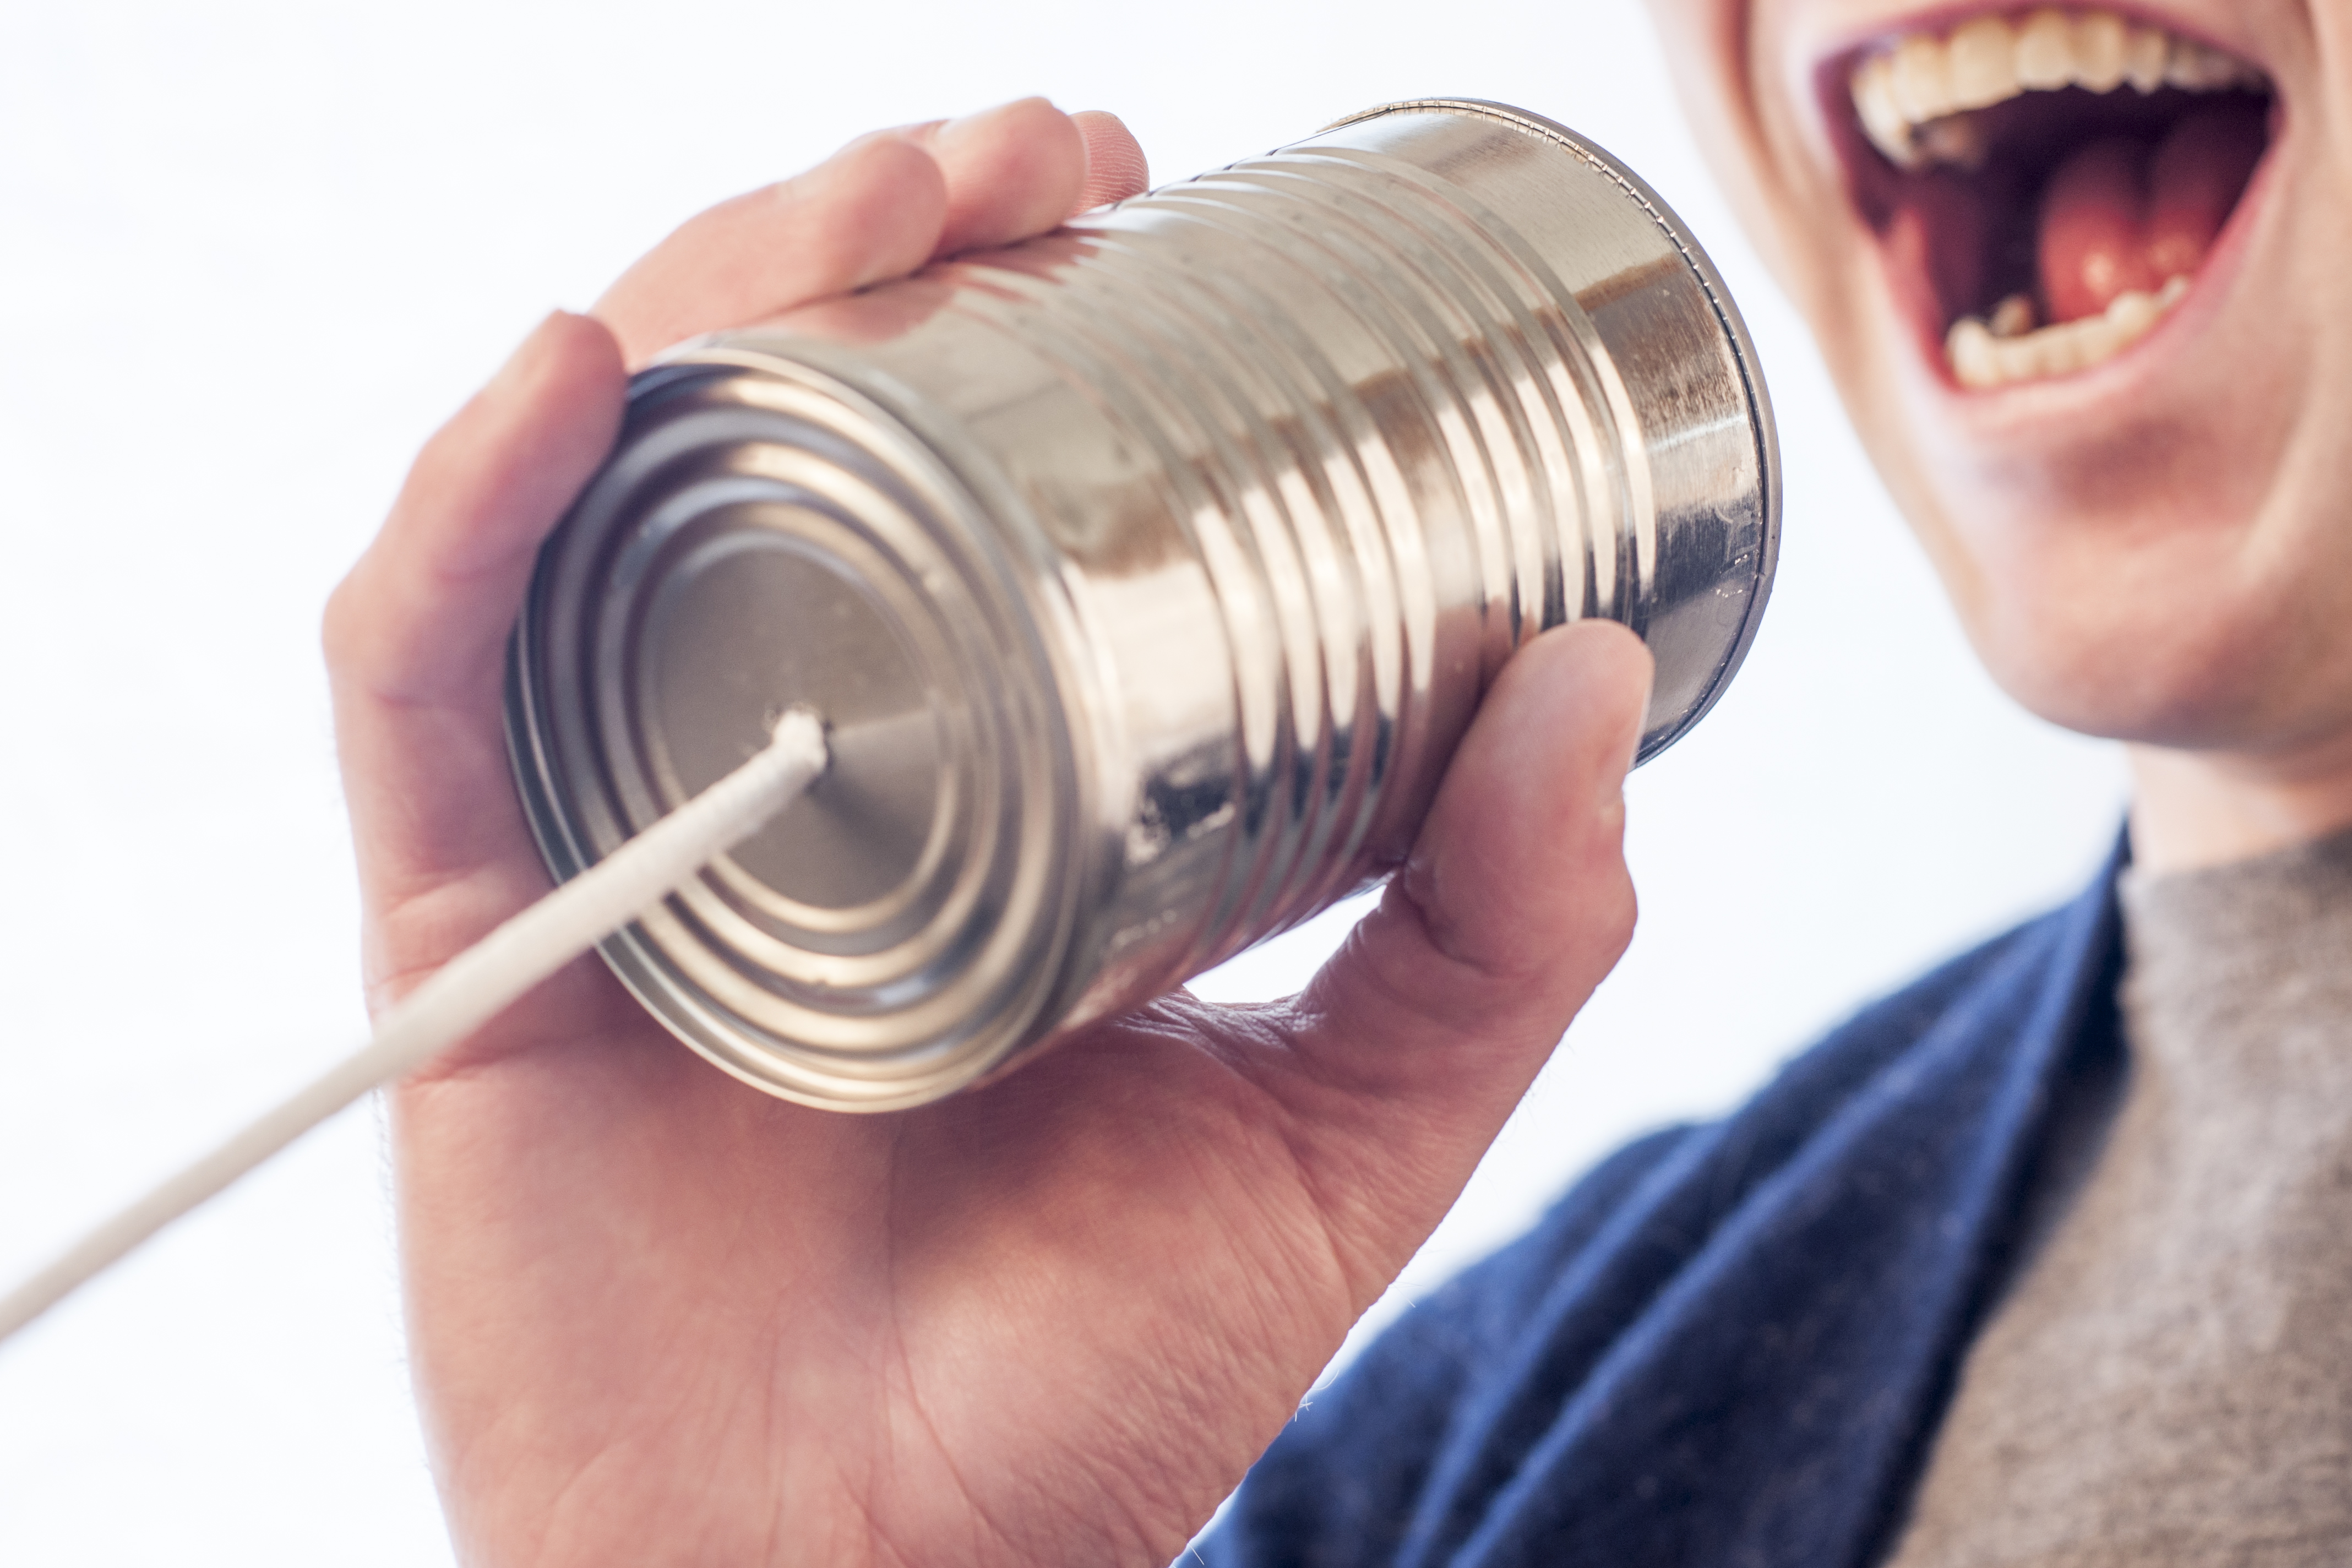 Marketing Misconceptions to new customers